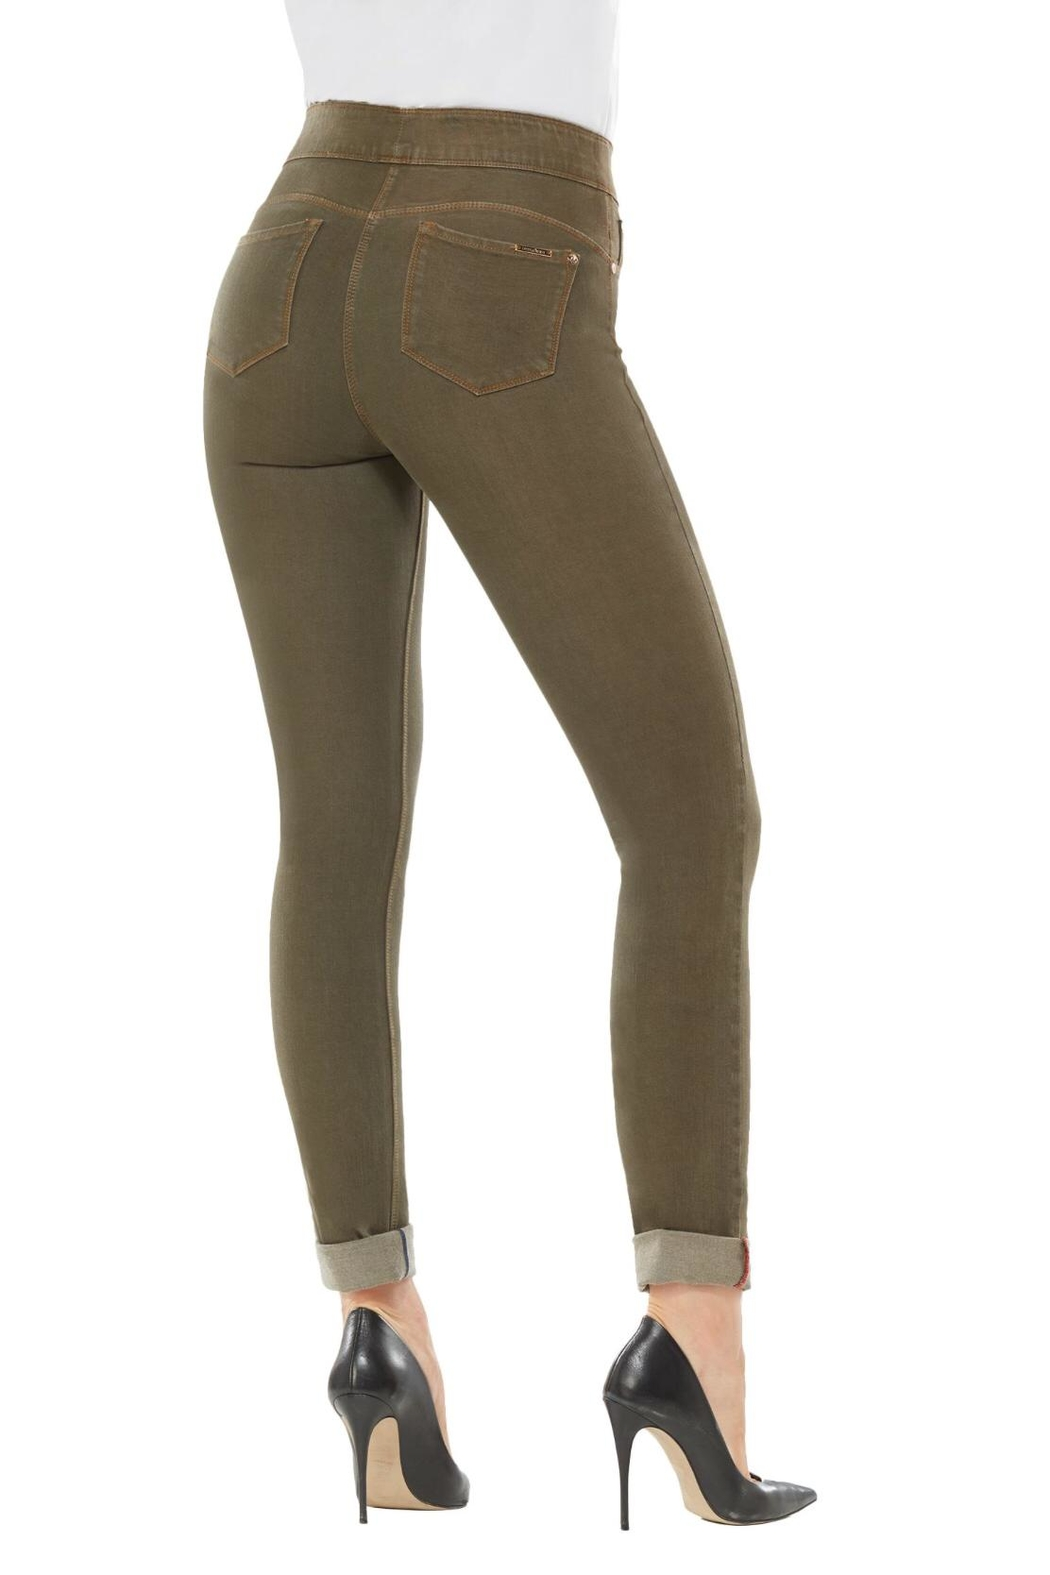 Nygard Olive Skinny Jeans - Side Cropped Image